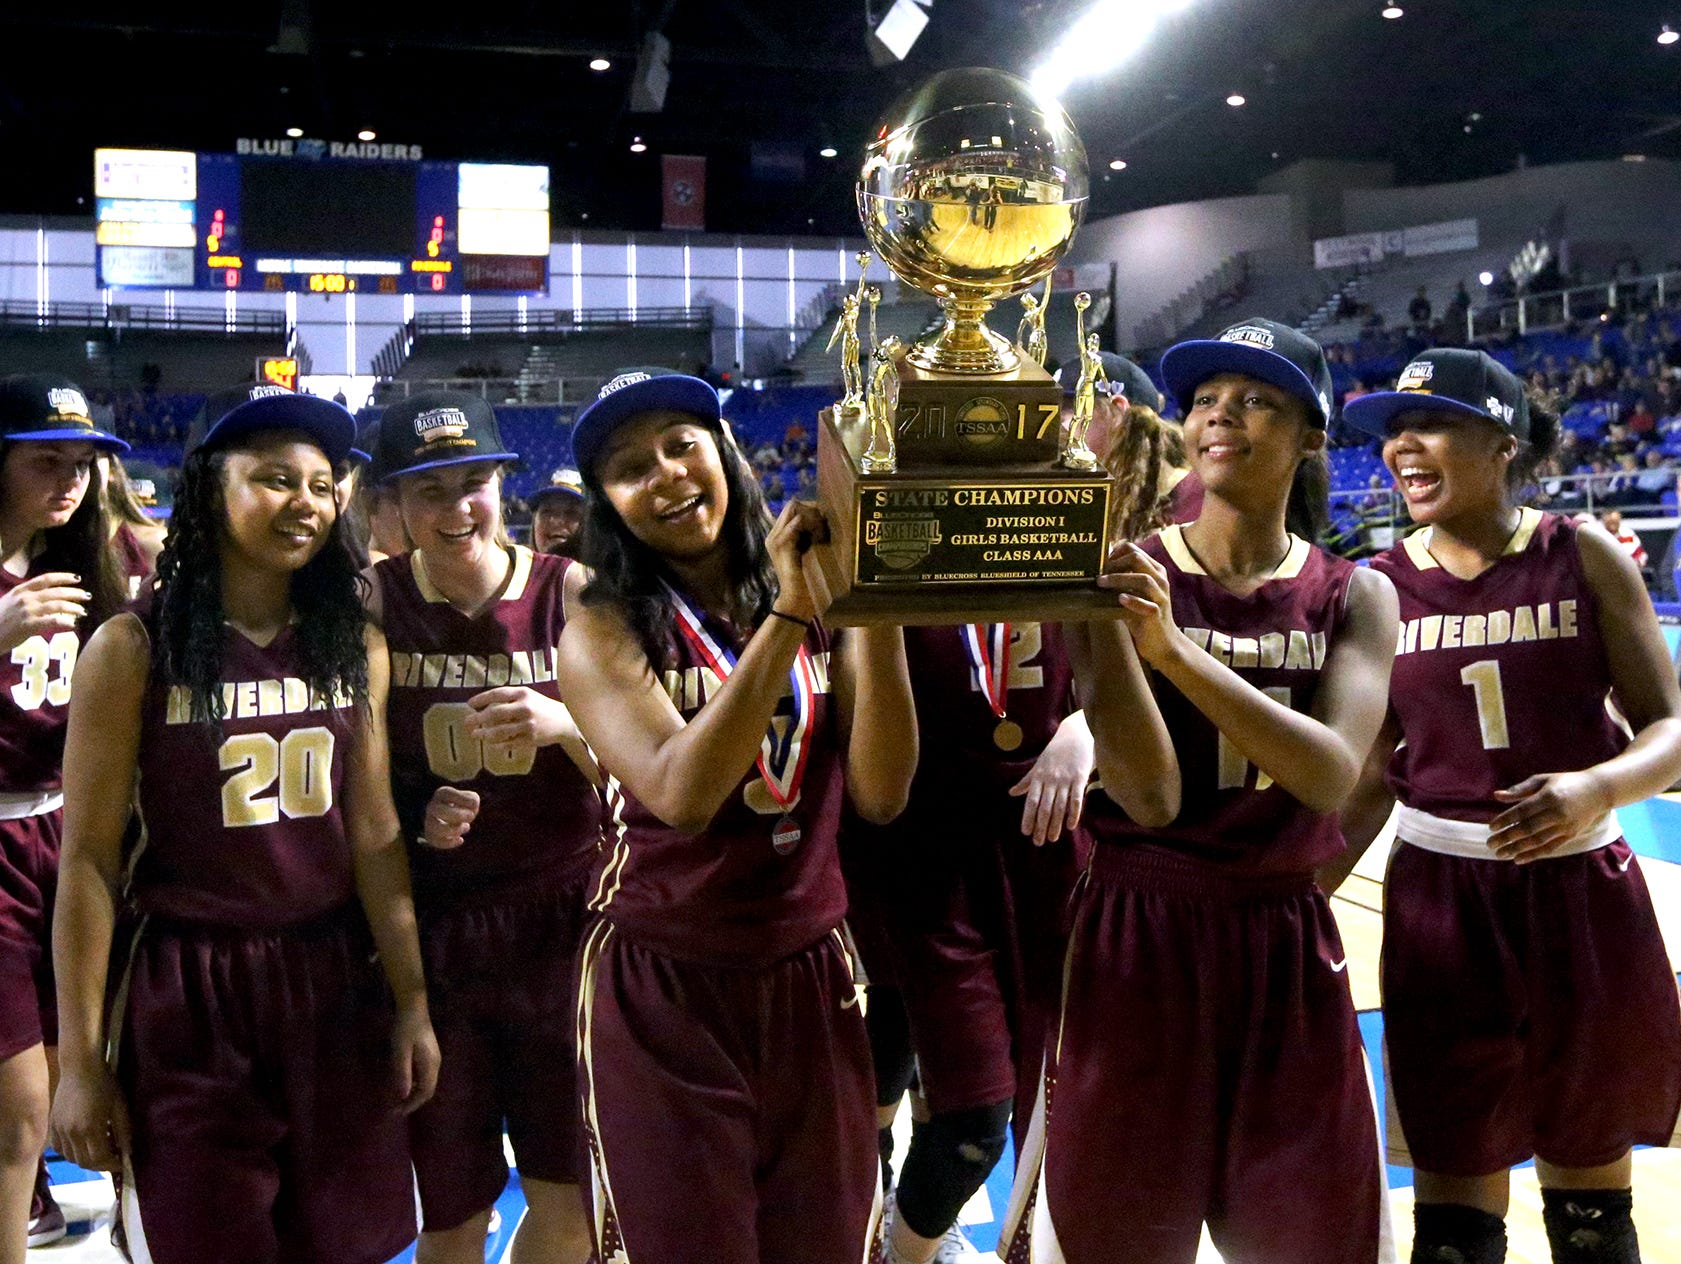 Riverdale's Anastasia Hayes (3) and her sister Aislynn Hayes (11) carry the championship trophy over to the Riverdale fans as the team celebrates its victory over Memphis Central in the Class AAA championship on Saturday, March 11, 2017.